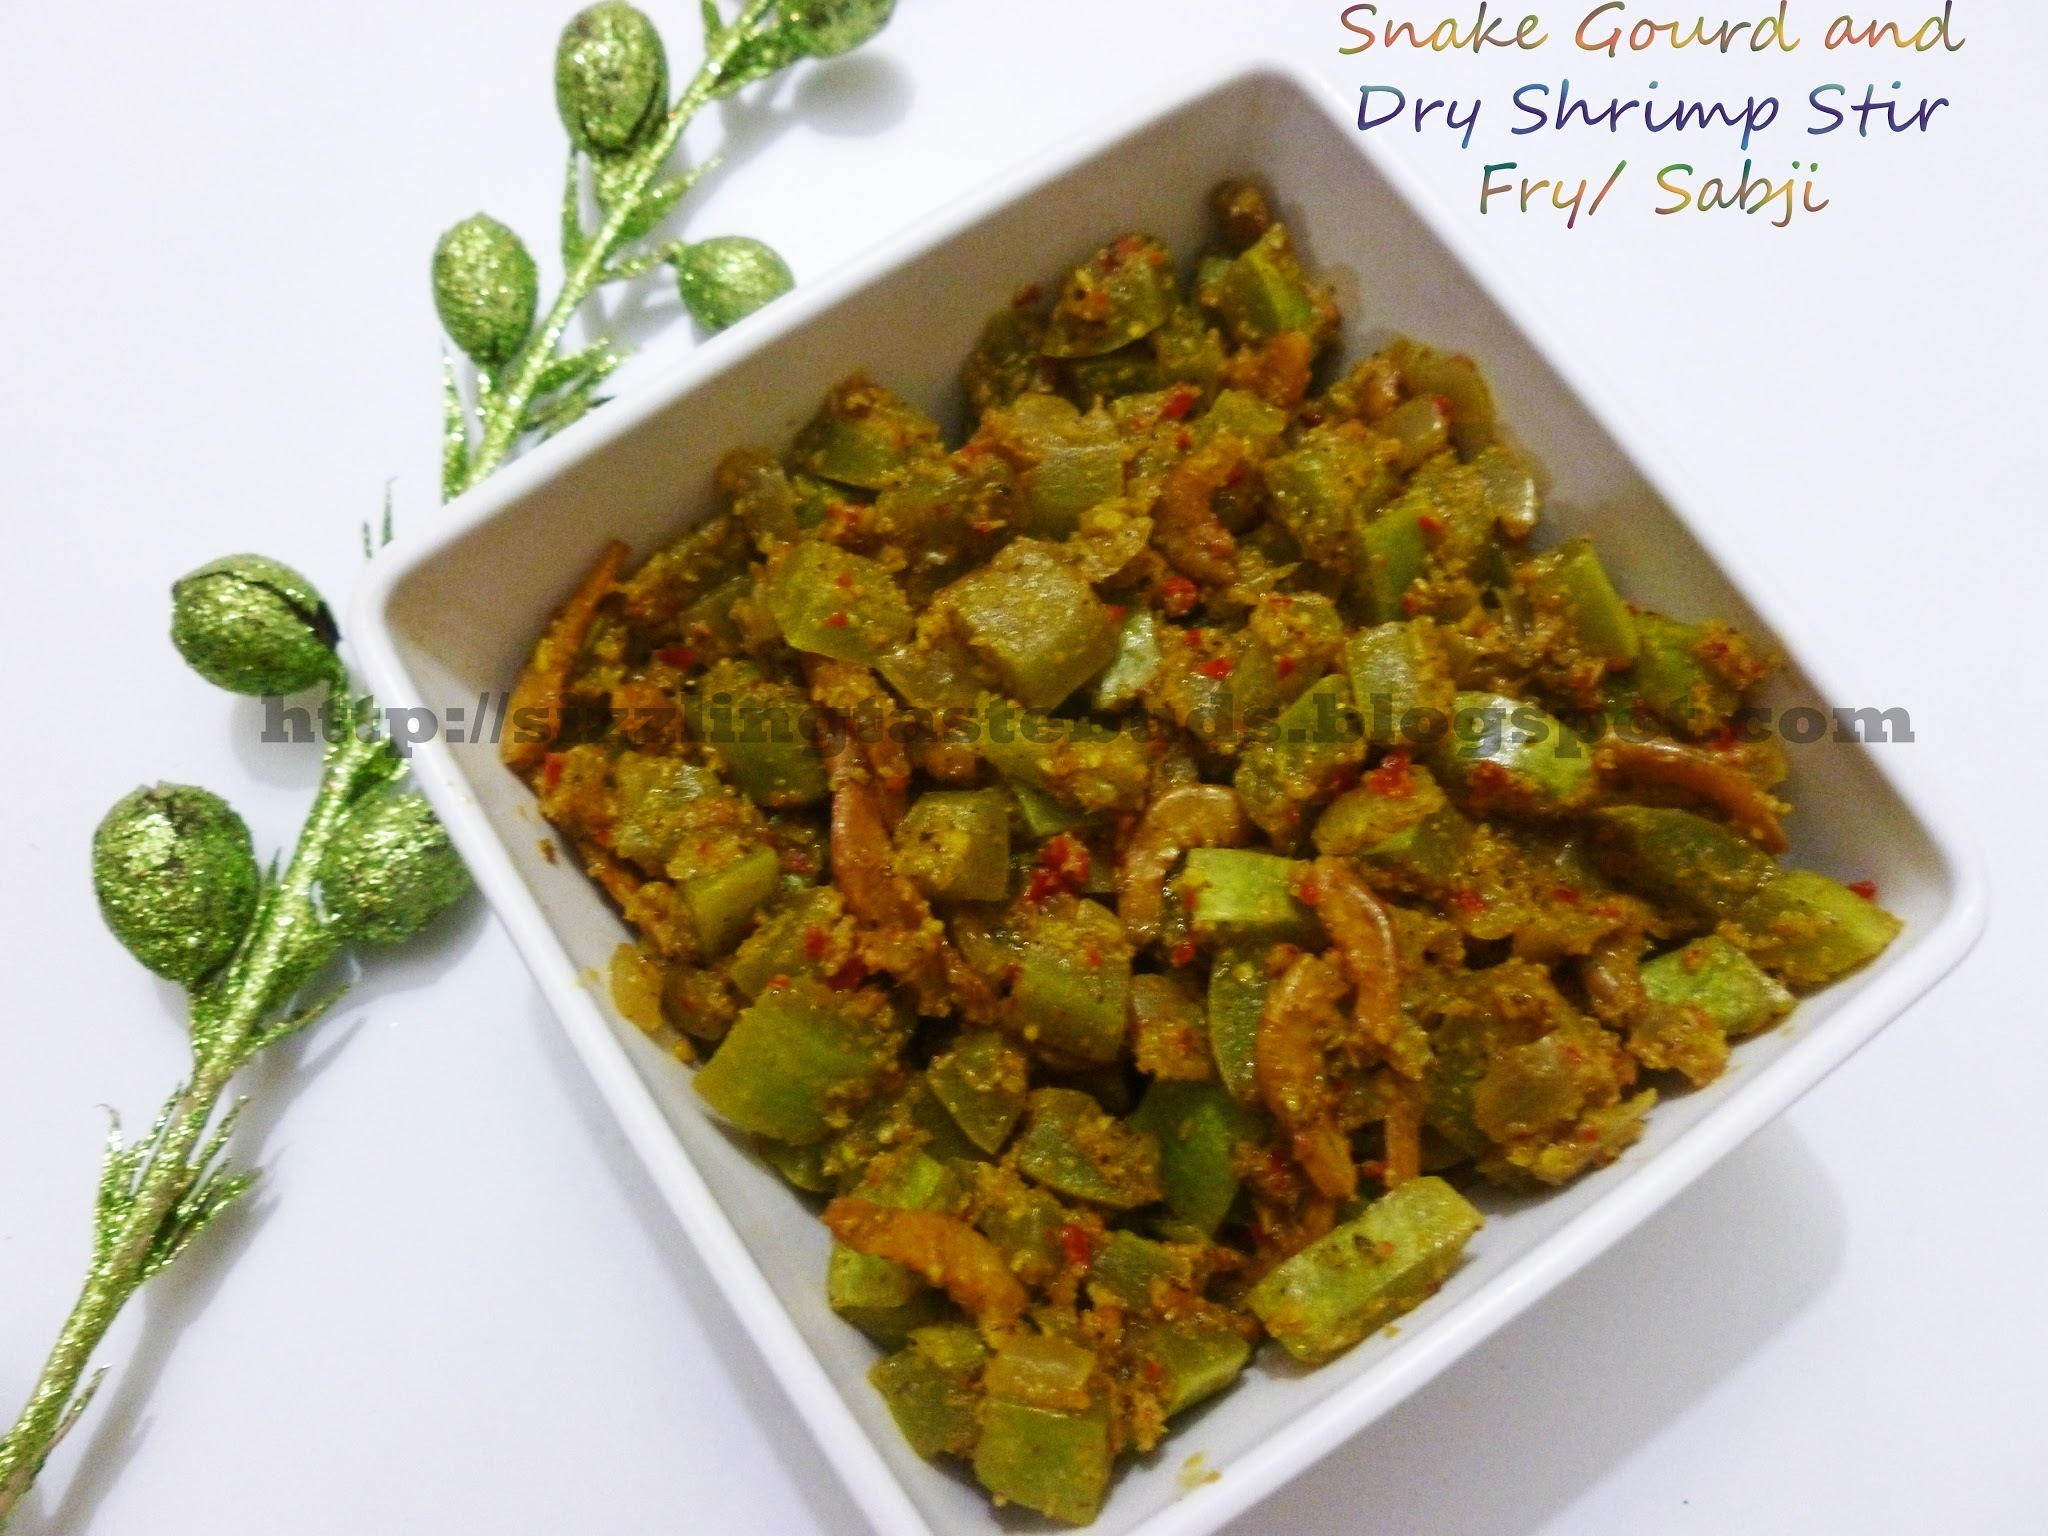 Snake Gourd and Dry Shrimp Stir Fry/ Palya/ Sabzi